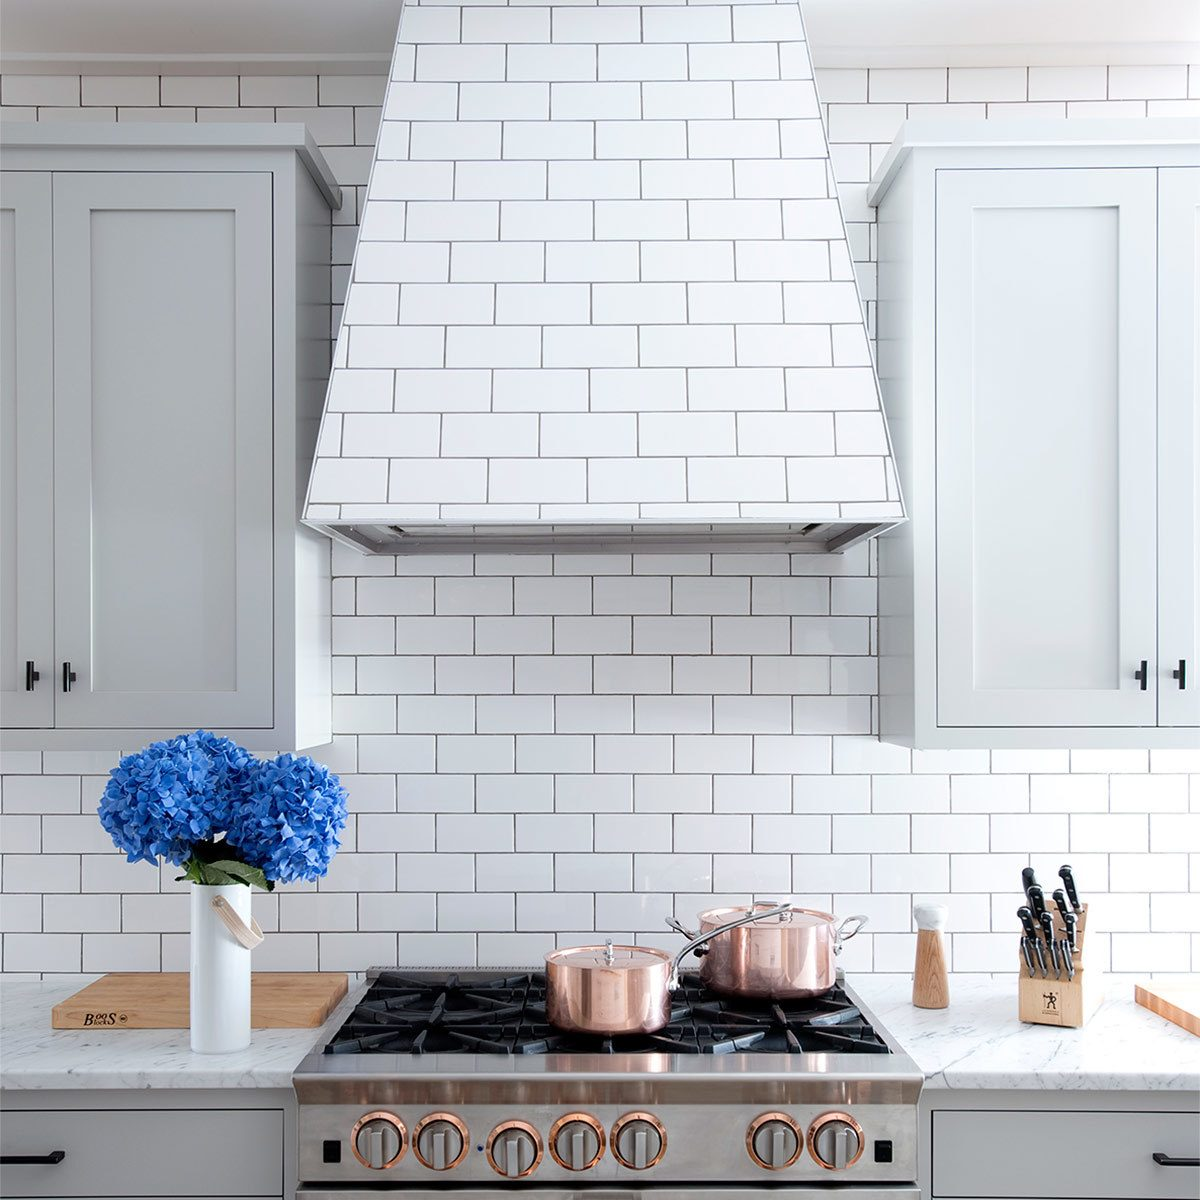 Creative Ways to Disguise a Range Hood Vent — The Family ...